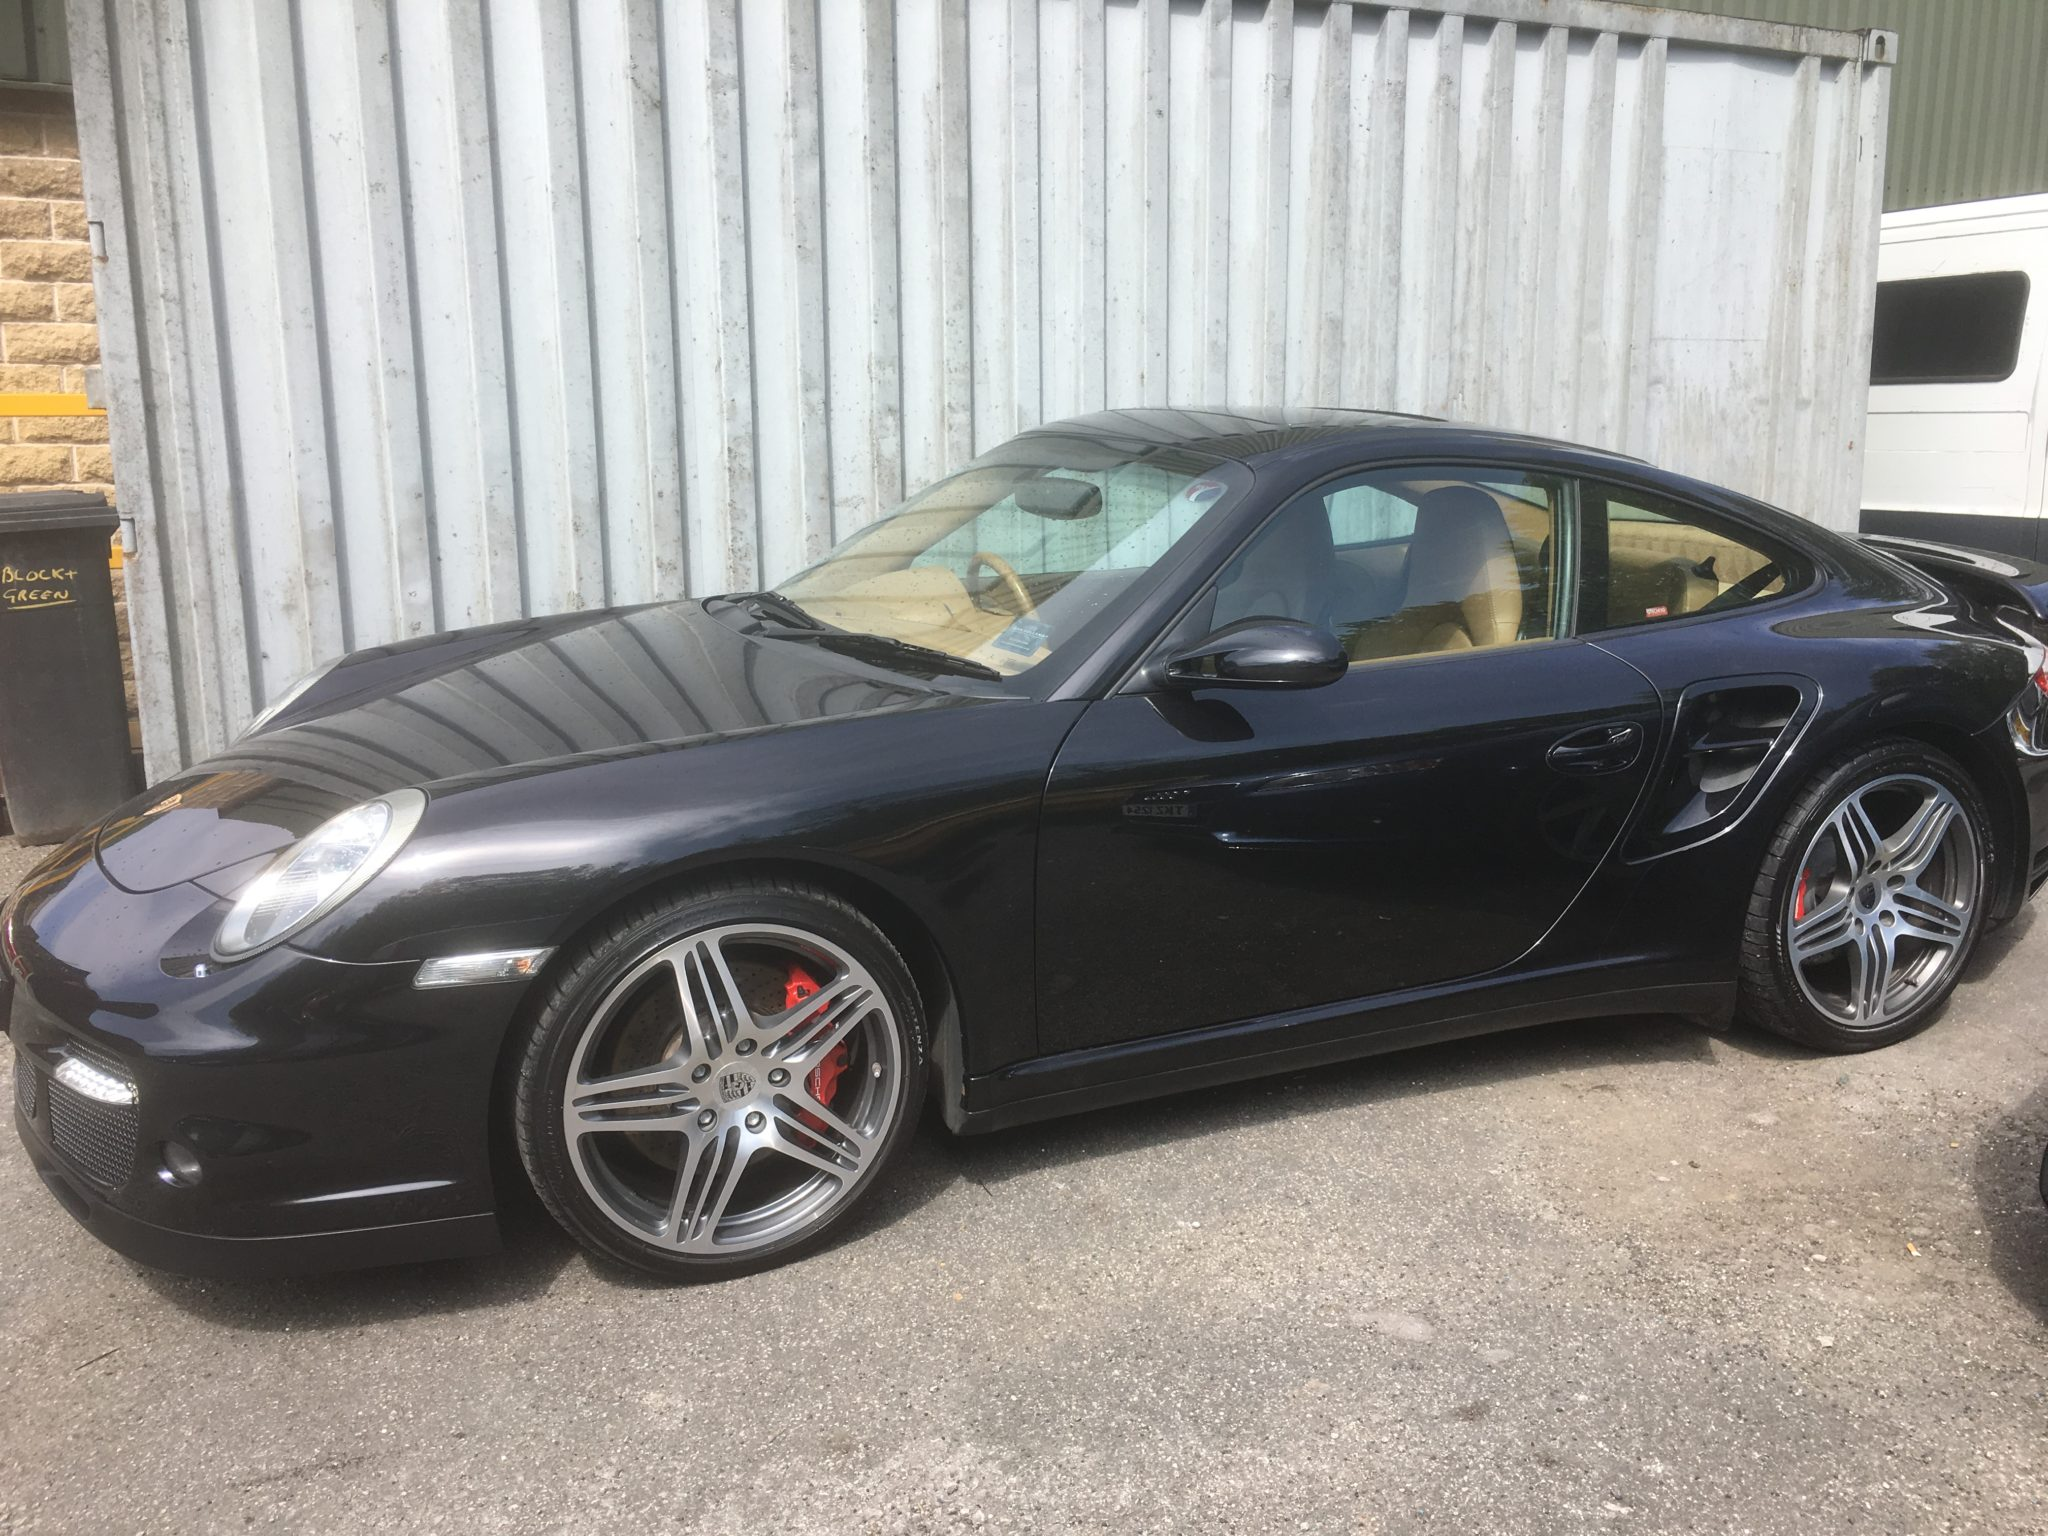 Graeme's Immaculately Detailed 997